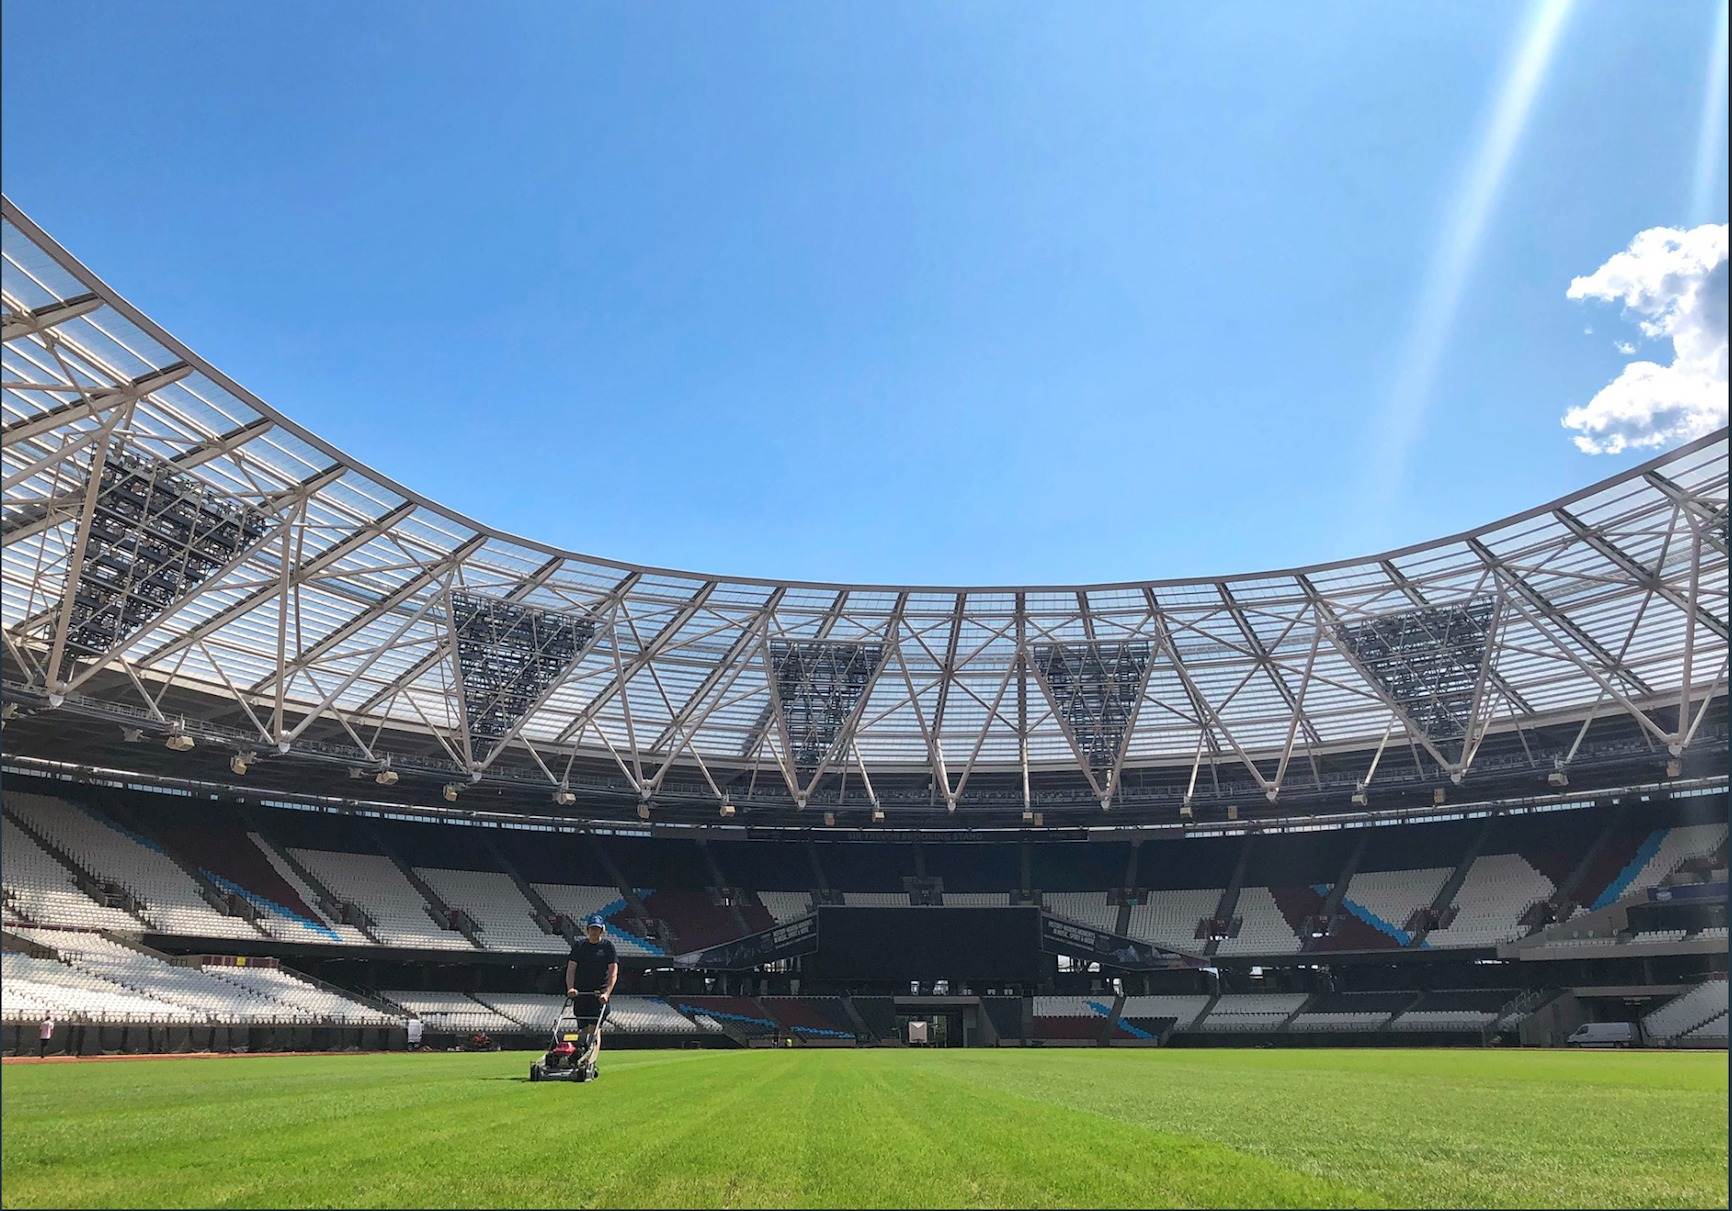 London Stadium hosts four sport and music events in packed